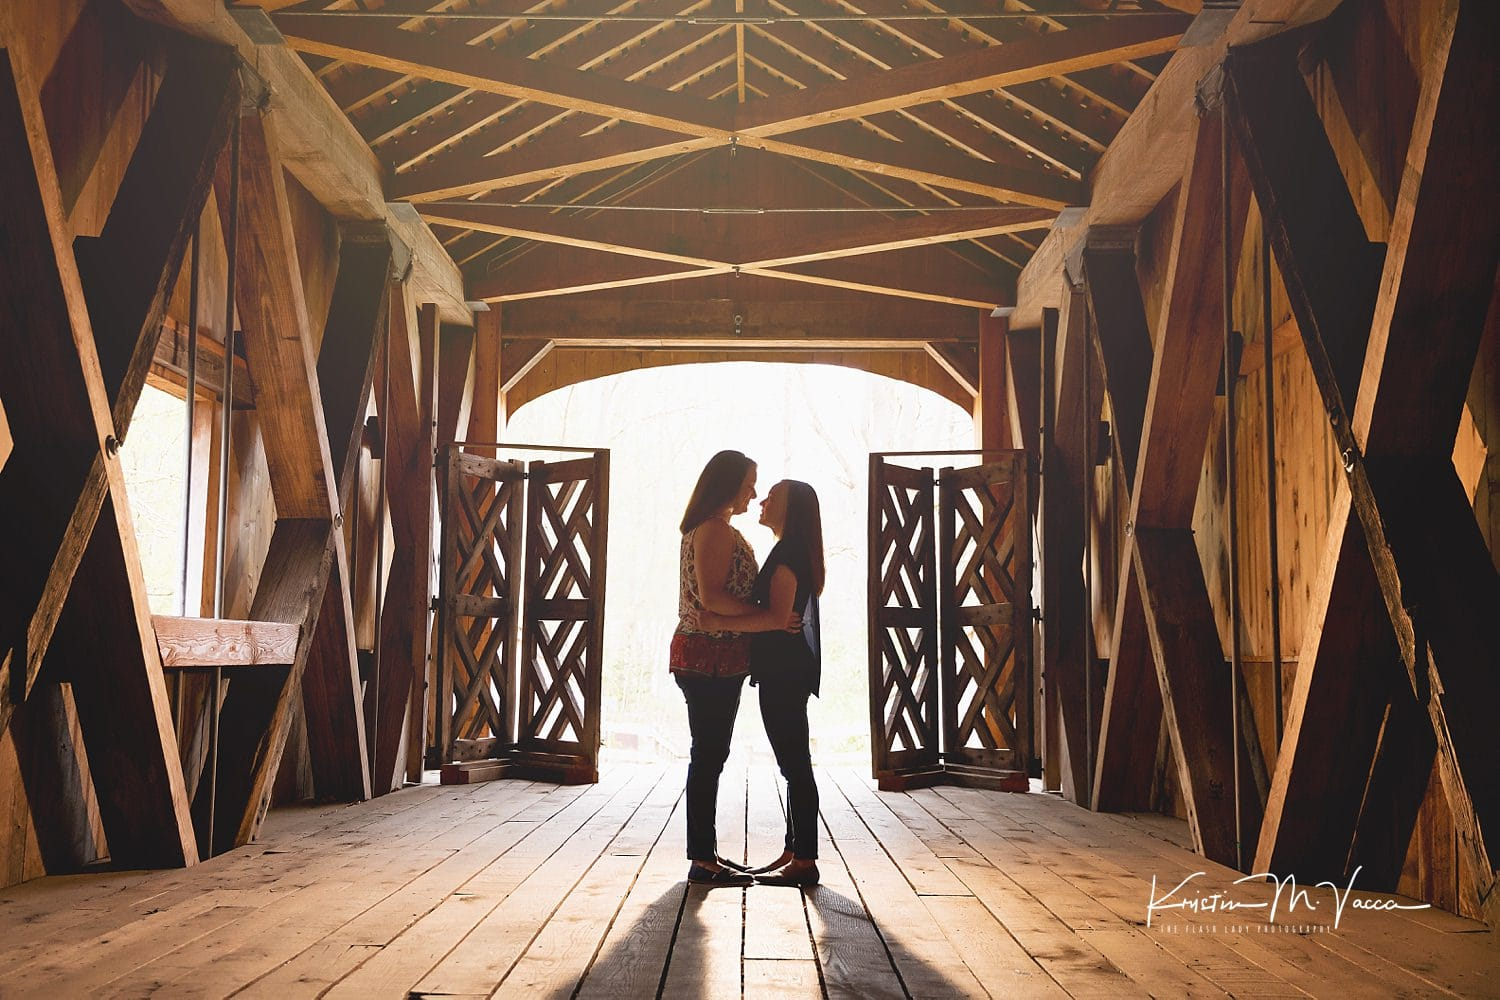 Comstock Bridge engagement session with Hope & Samantha in East Hampton, CT by wedding photographer The Flash Lady Photography